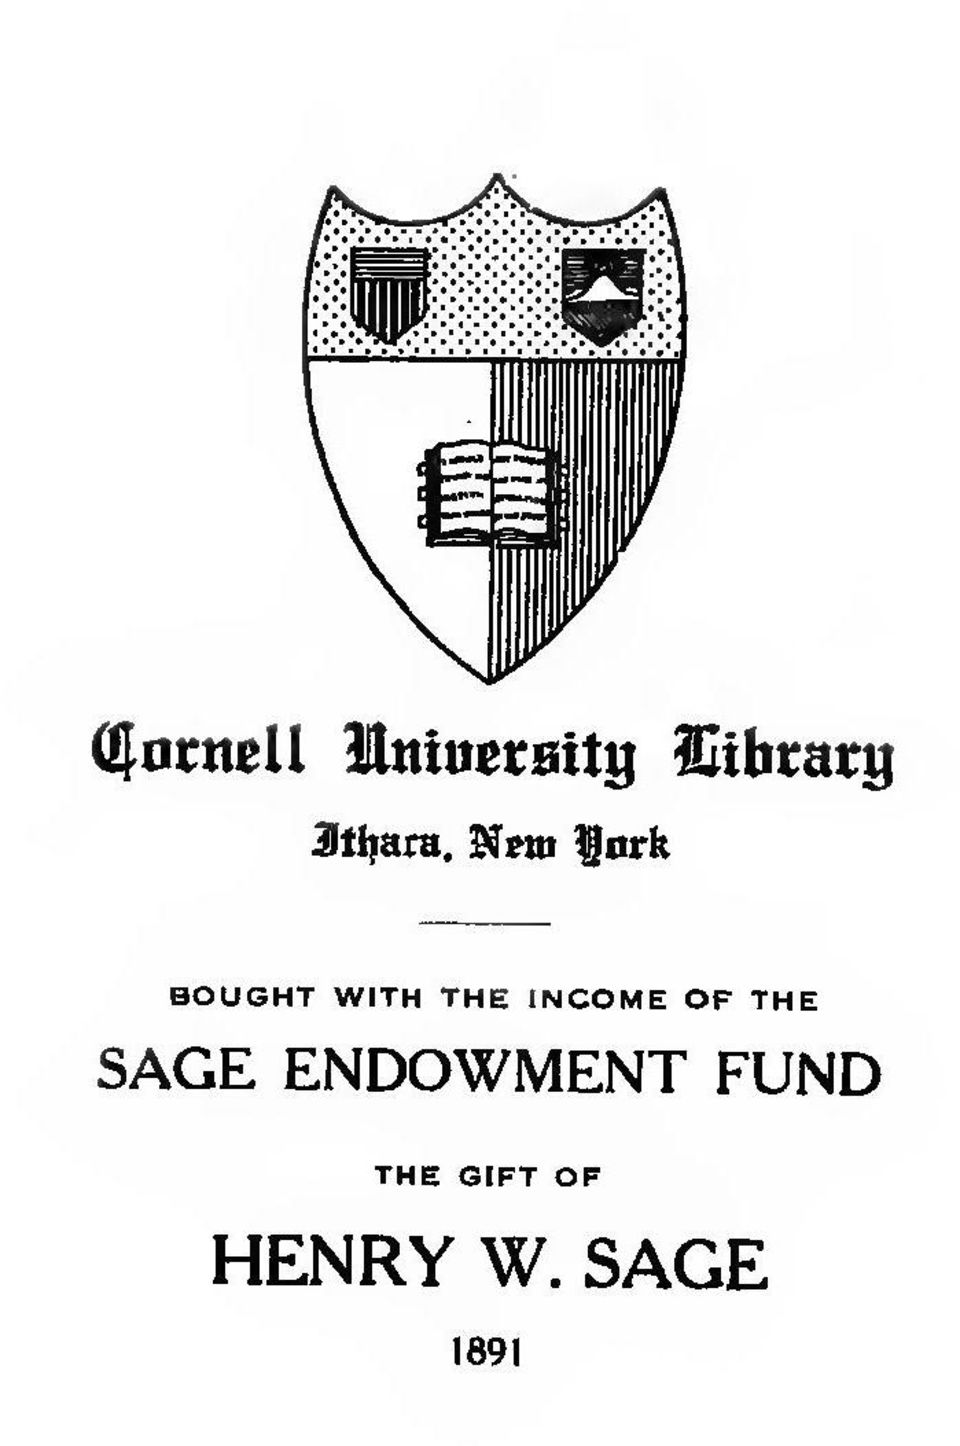 THE INCOME OF THE SAGE ENDOWMENT